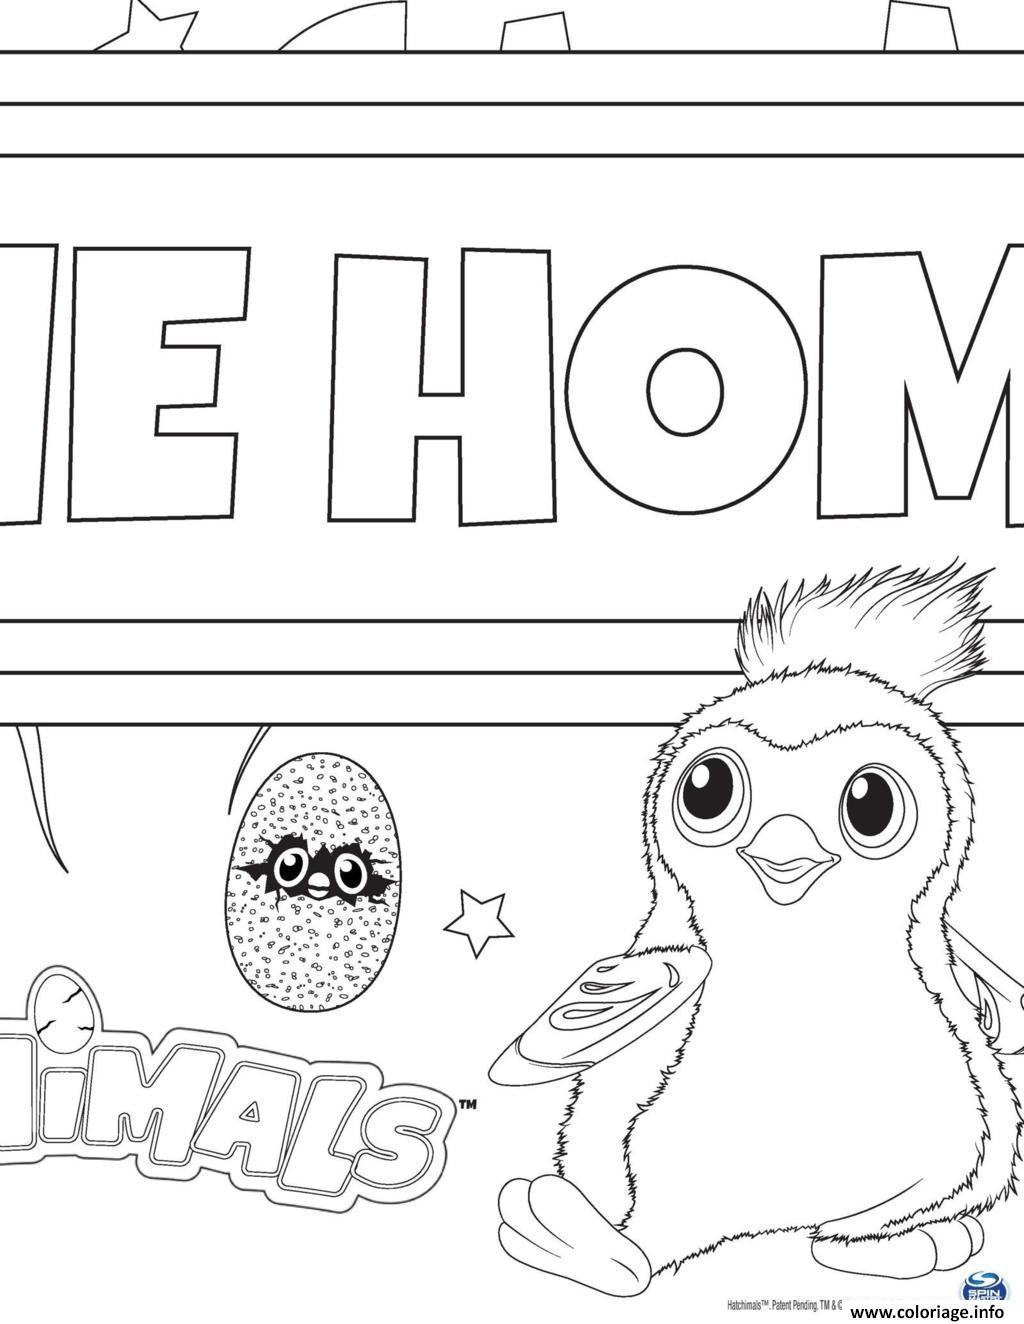 coloriage hatchy hatchimals draggles  jecolorie